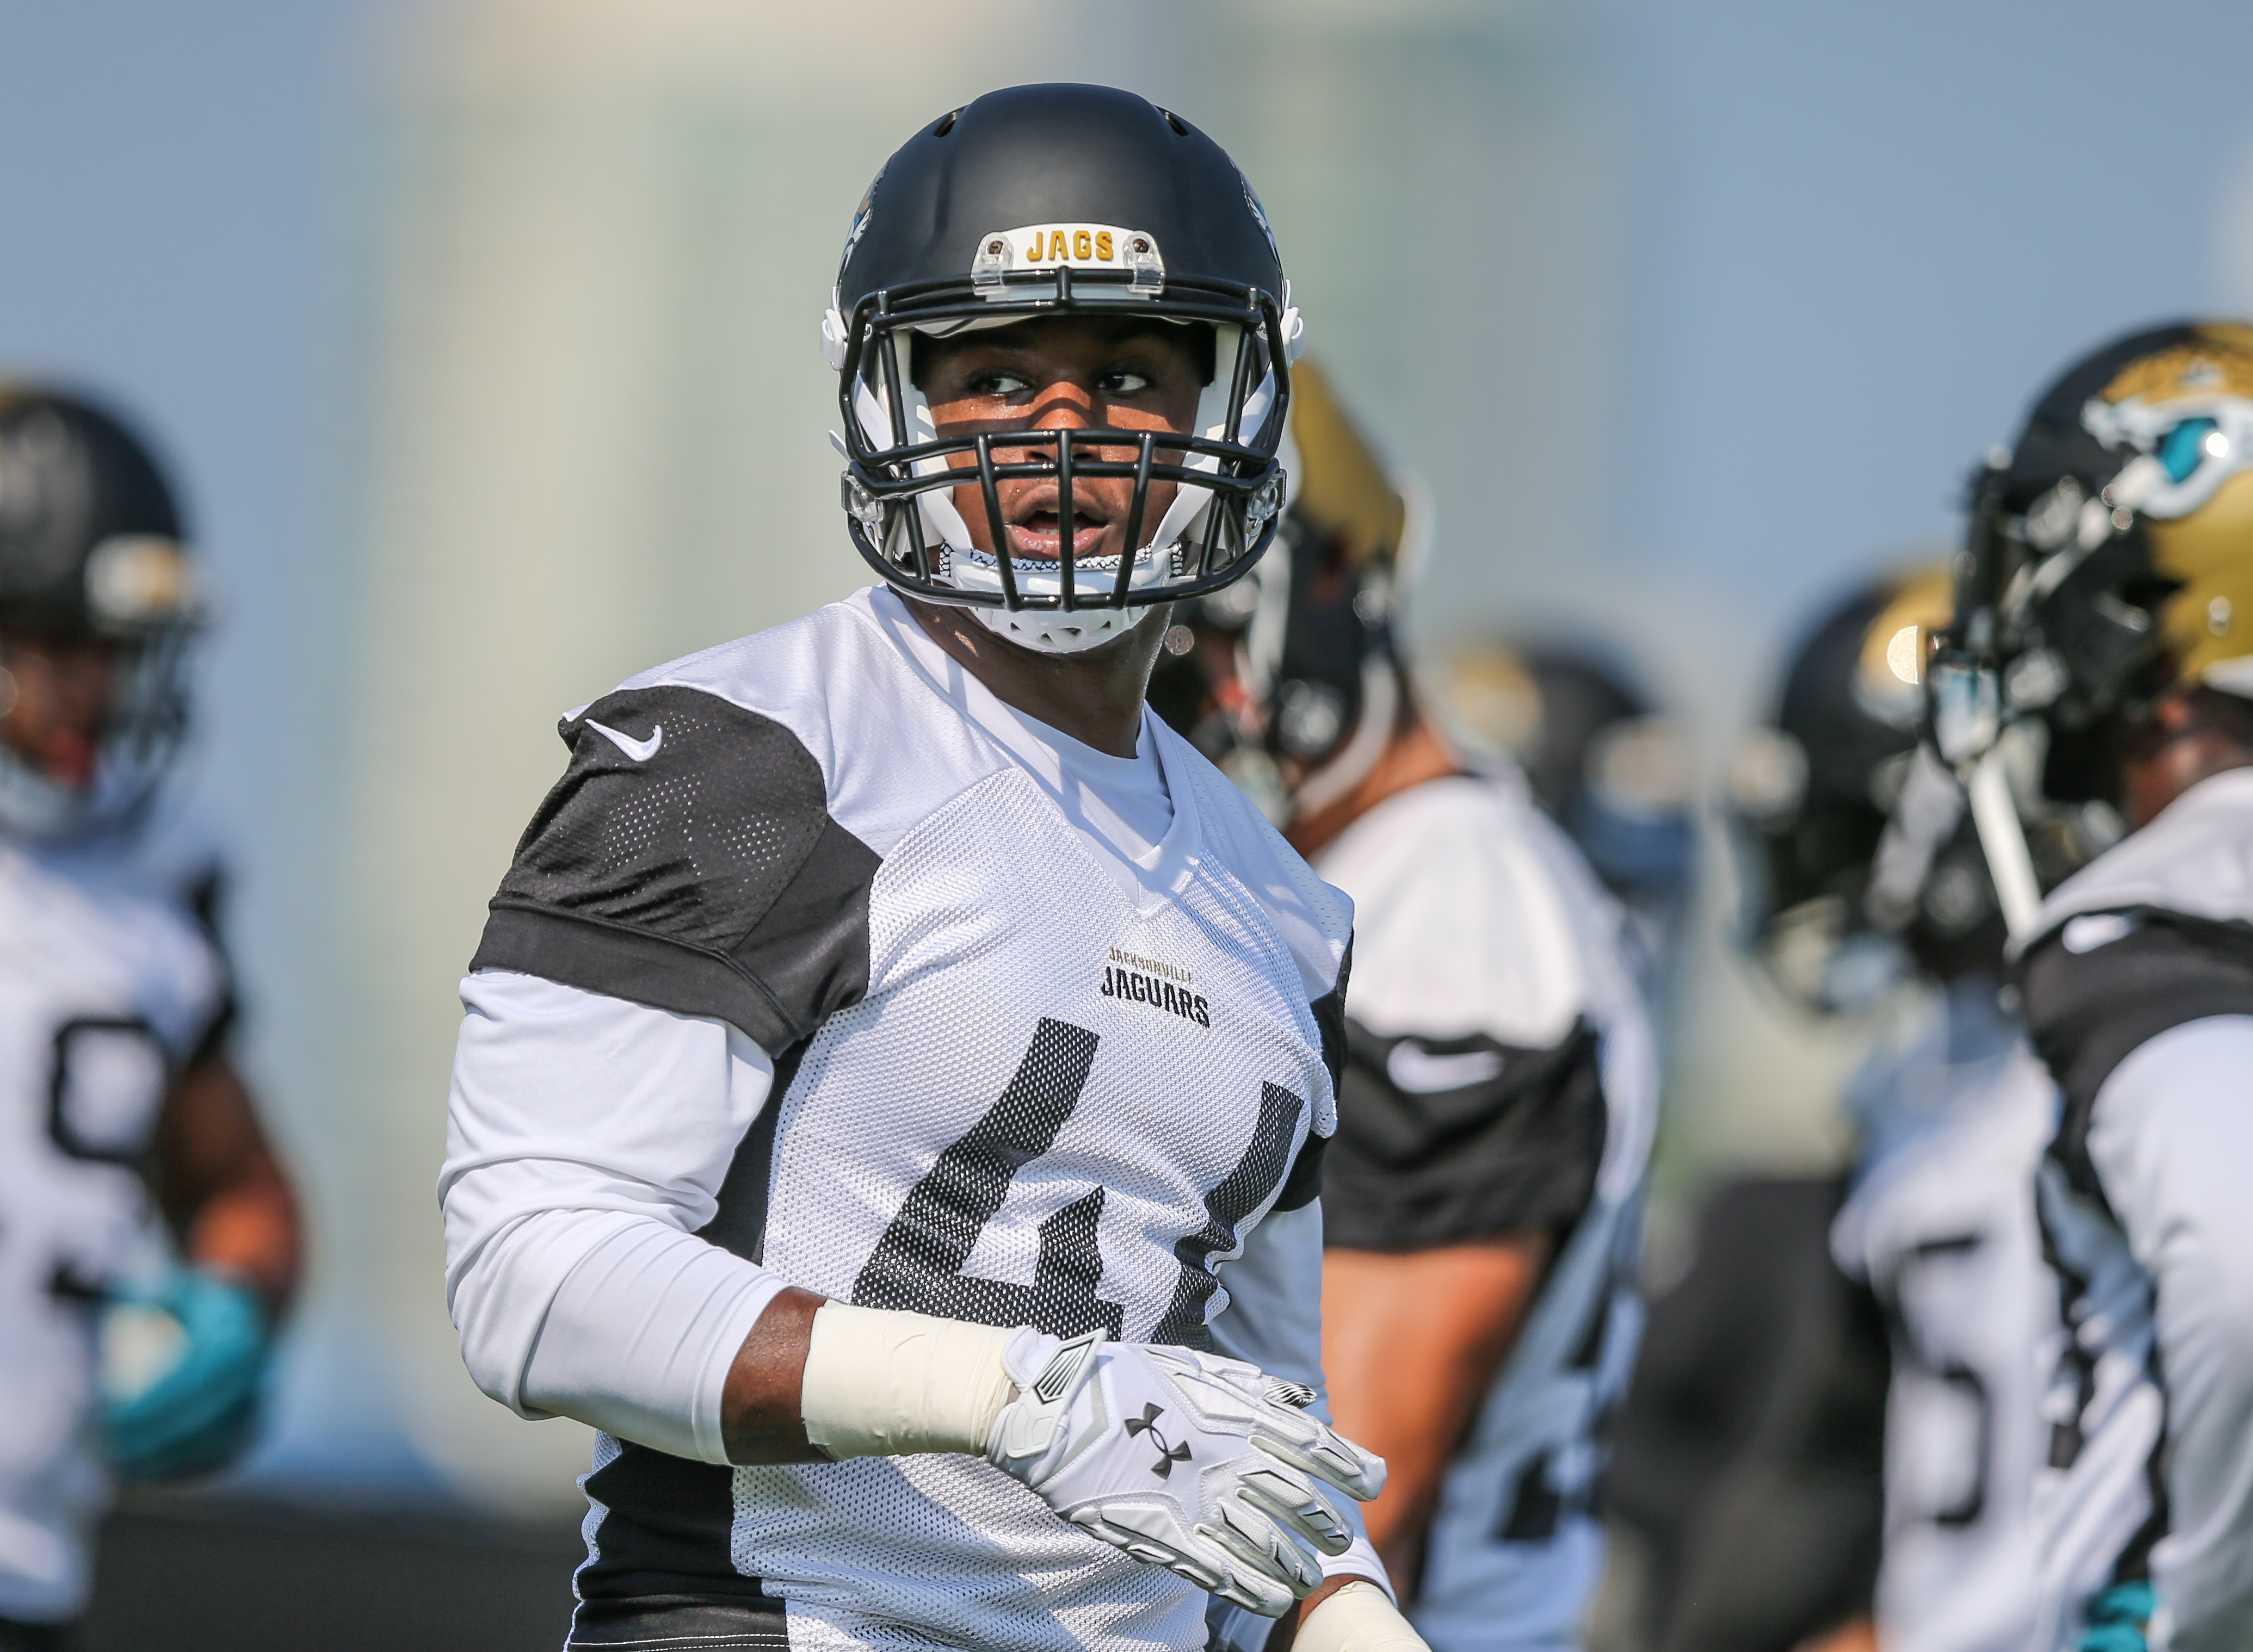 Jacksonville Jaguar linebacker Myles Jack (44) looks around during a drill at NFL football minicamp practice on Tuesday, June 14, 2016 in Jacksonville, Fla. (AP Photo/Gary McCullough)